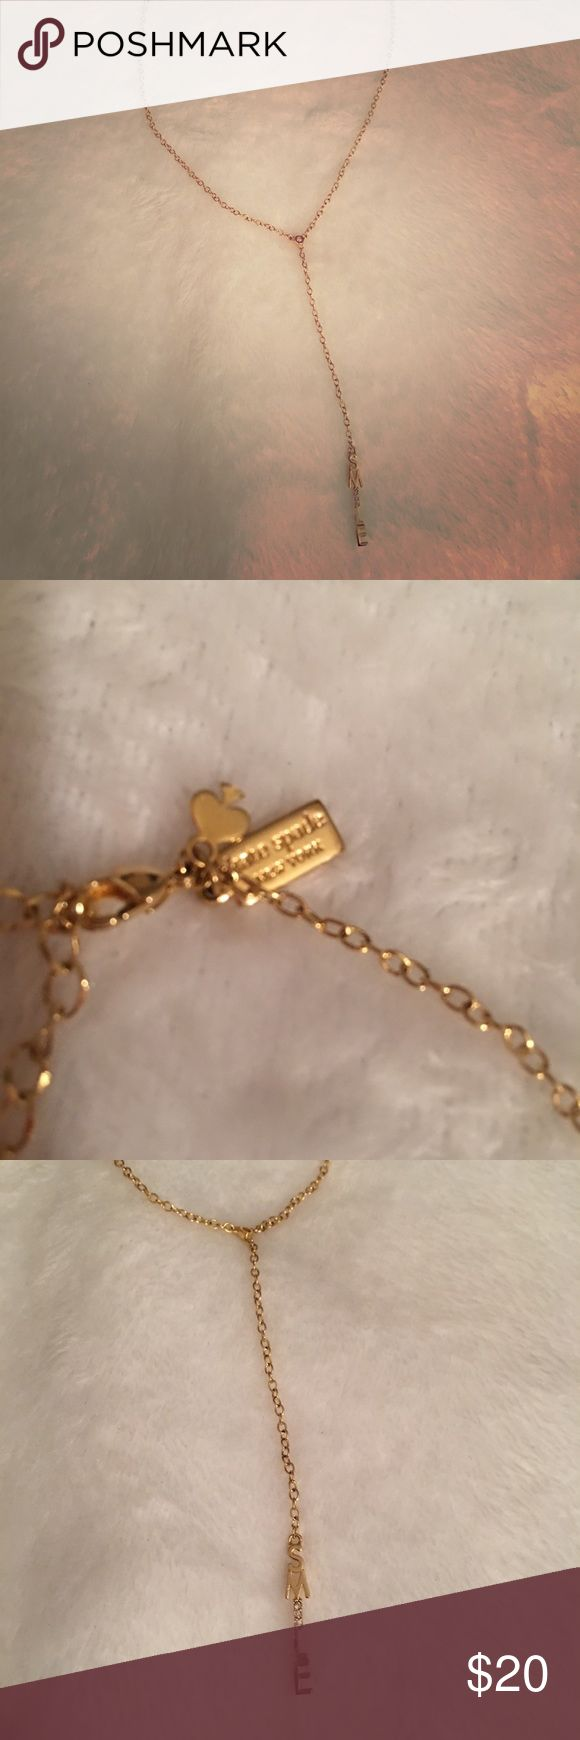 Kate spade necklace -20 chain  -18 karat gold plated  -only worn once or twice kate spade Jewelry Necklaces